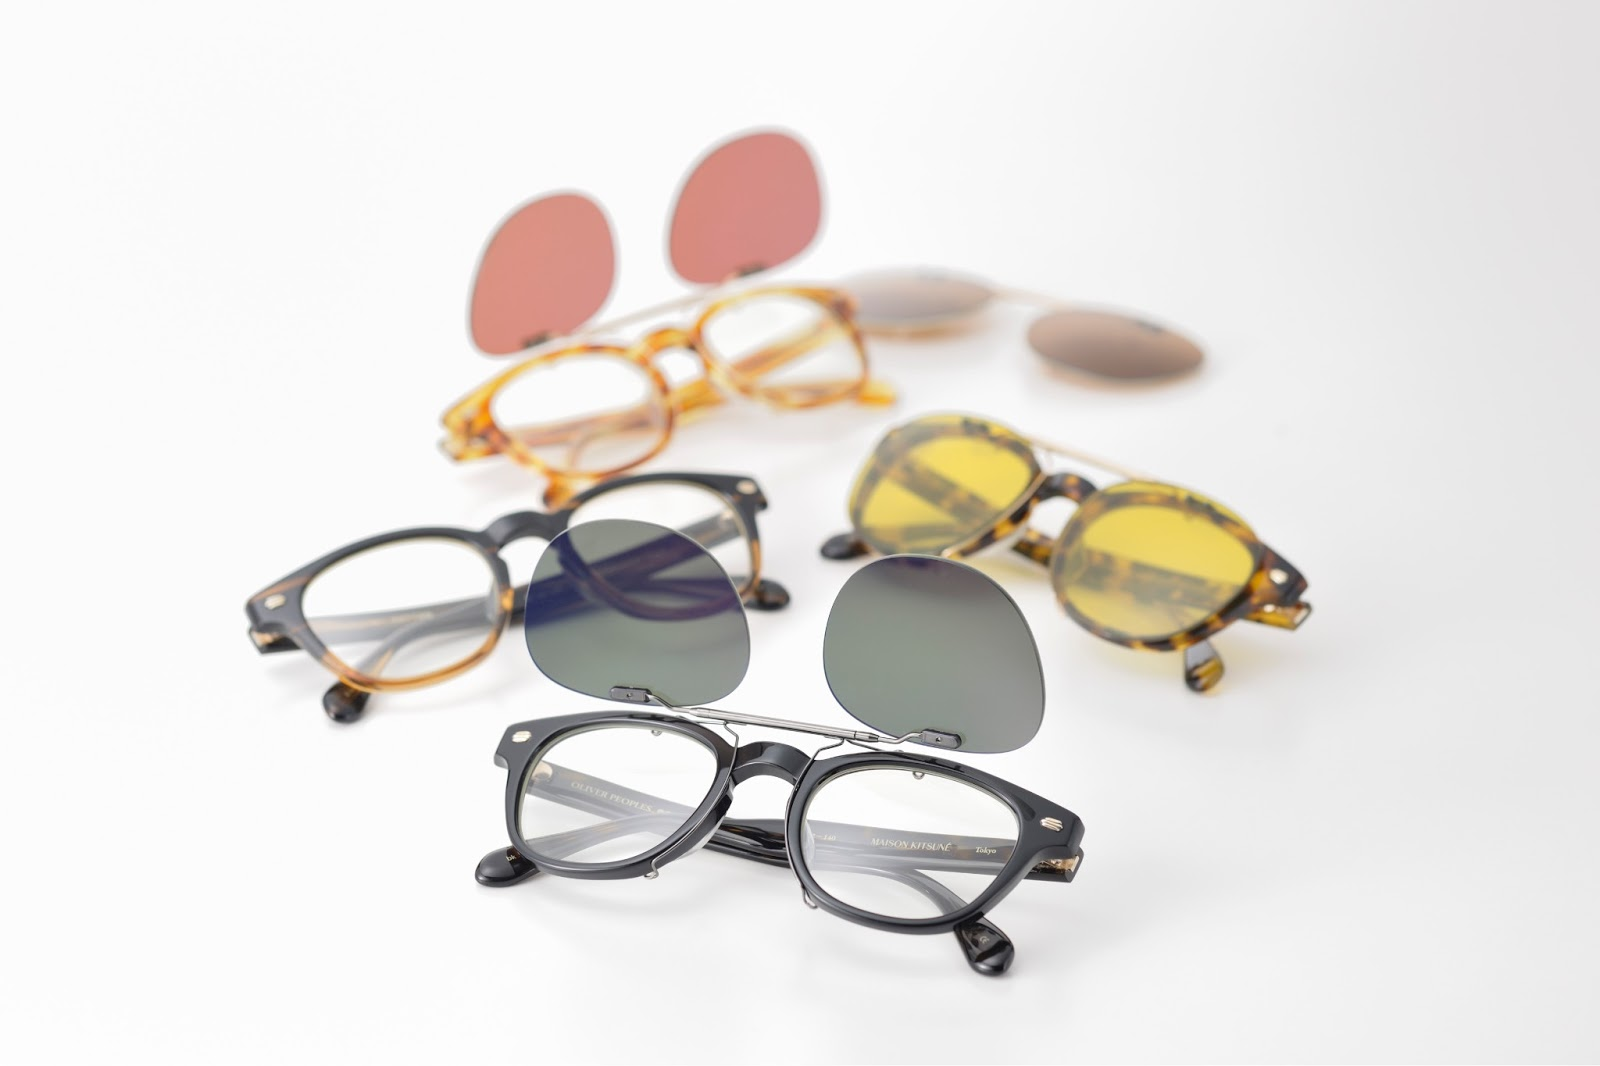 4737e70bcb8d Maison Kitsuné partners with Oliver Peoples for the launch of its ...